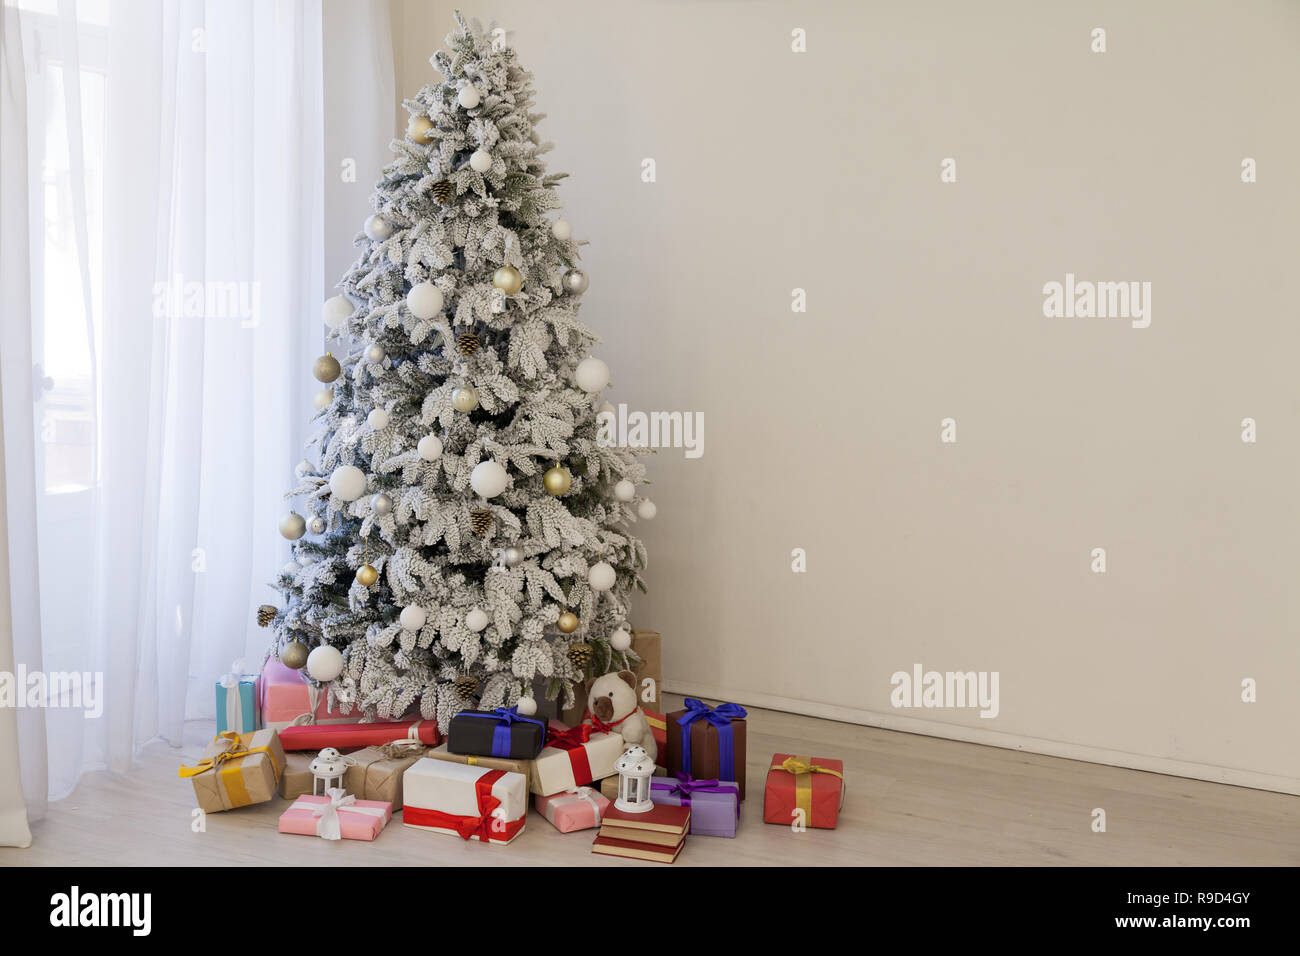 Christmas tree with presents, Garland lights new year - Stock Image